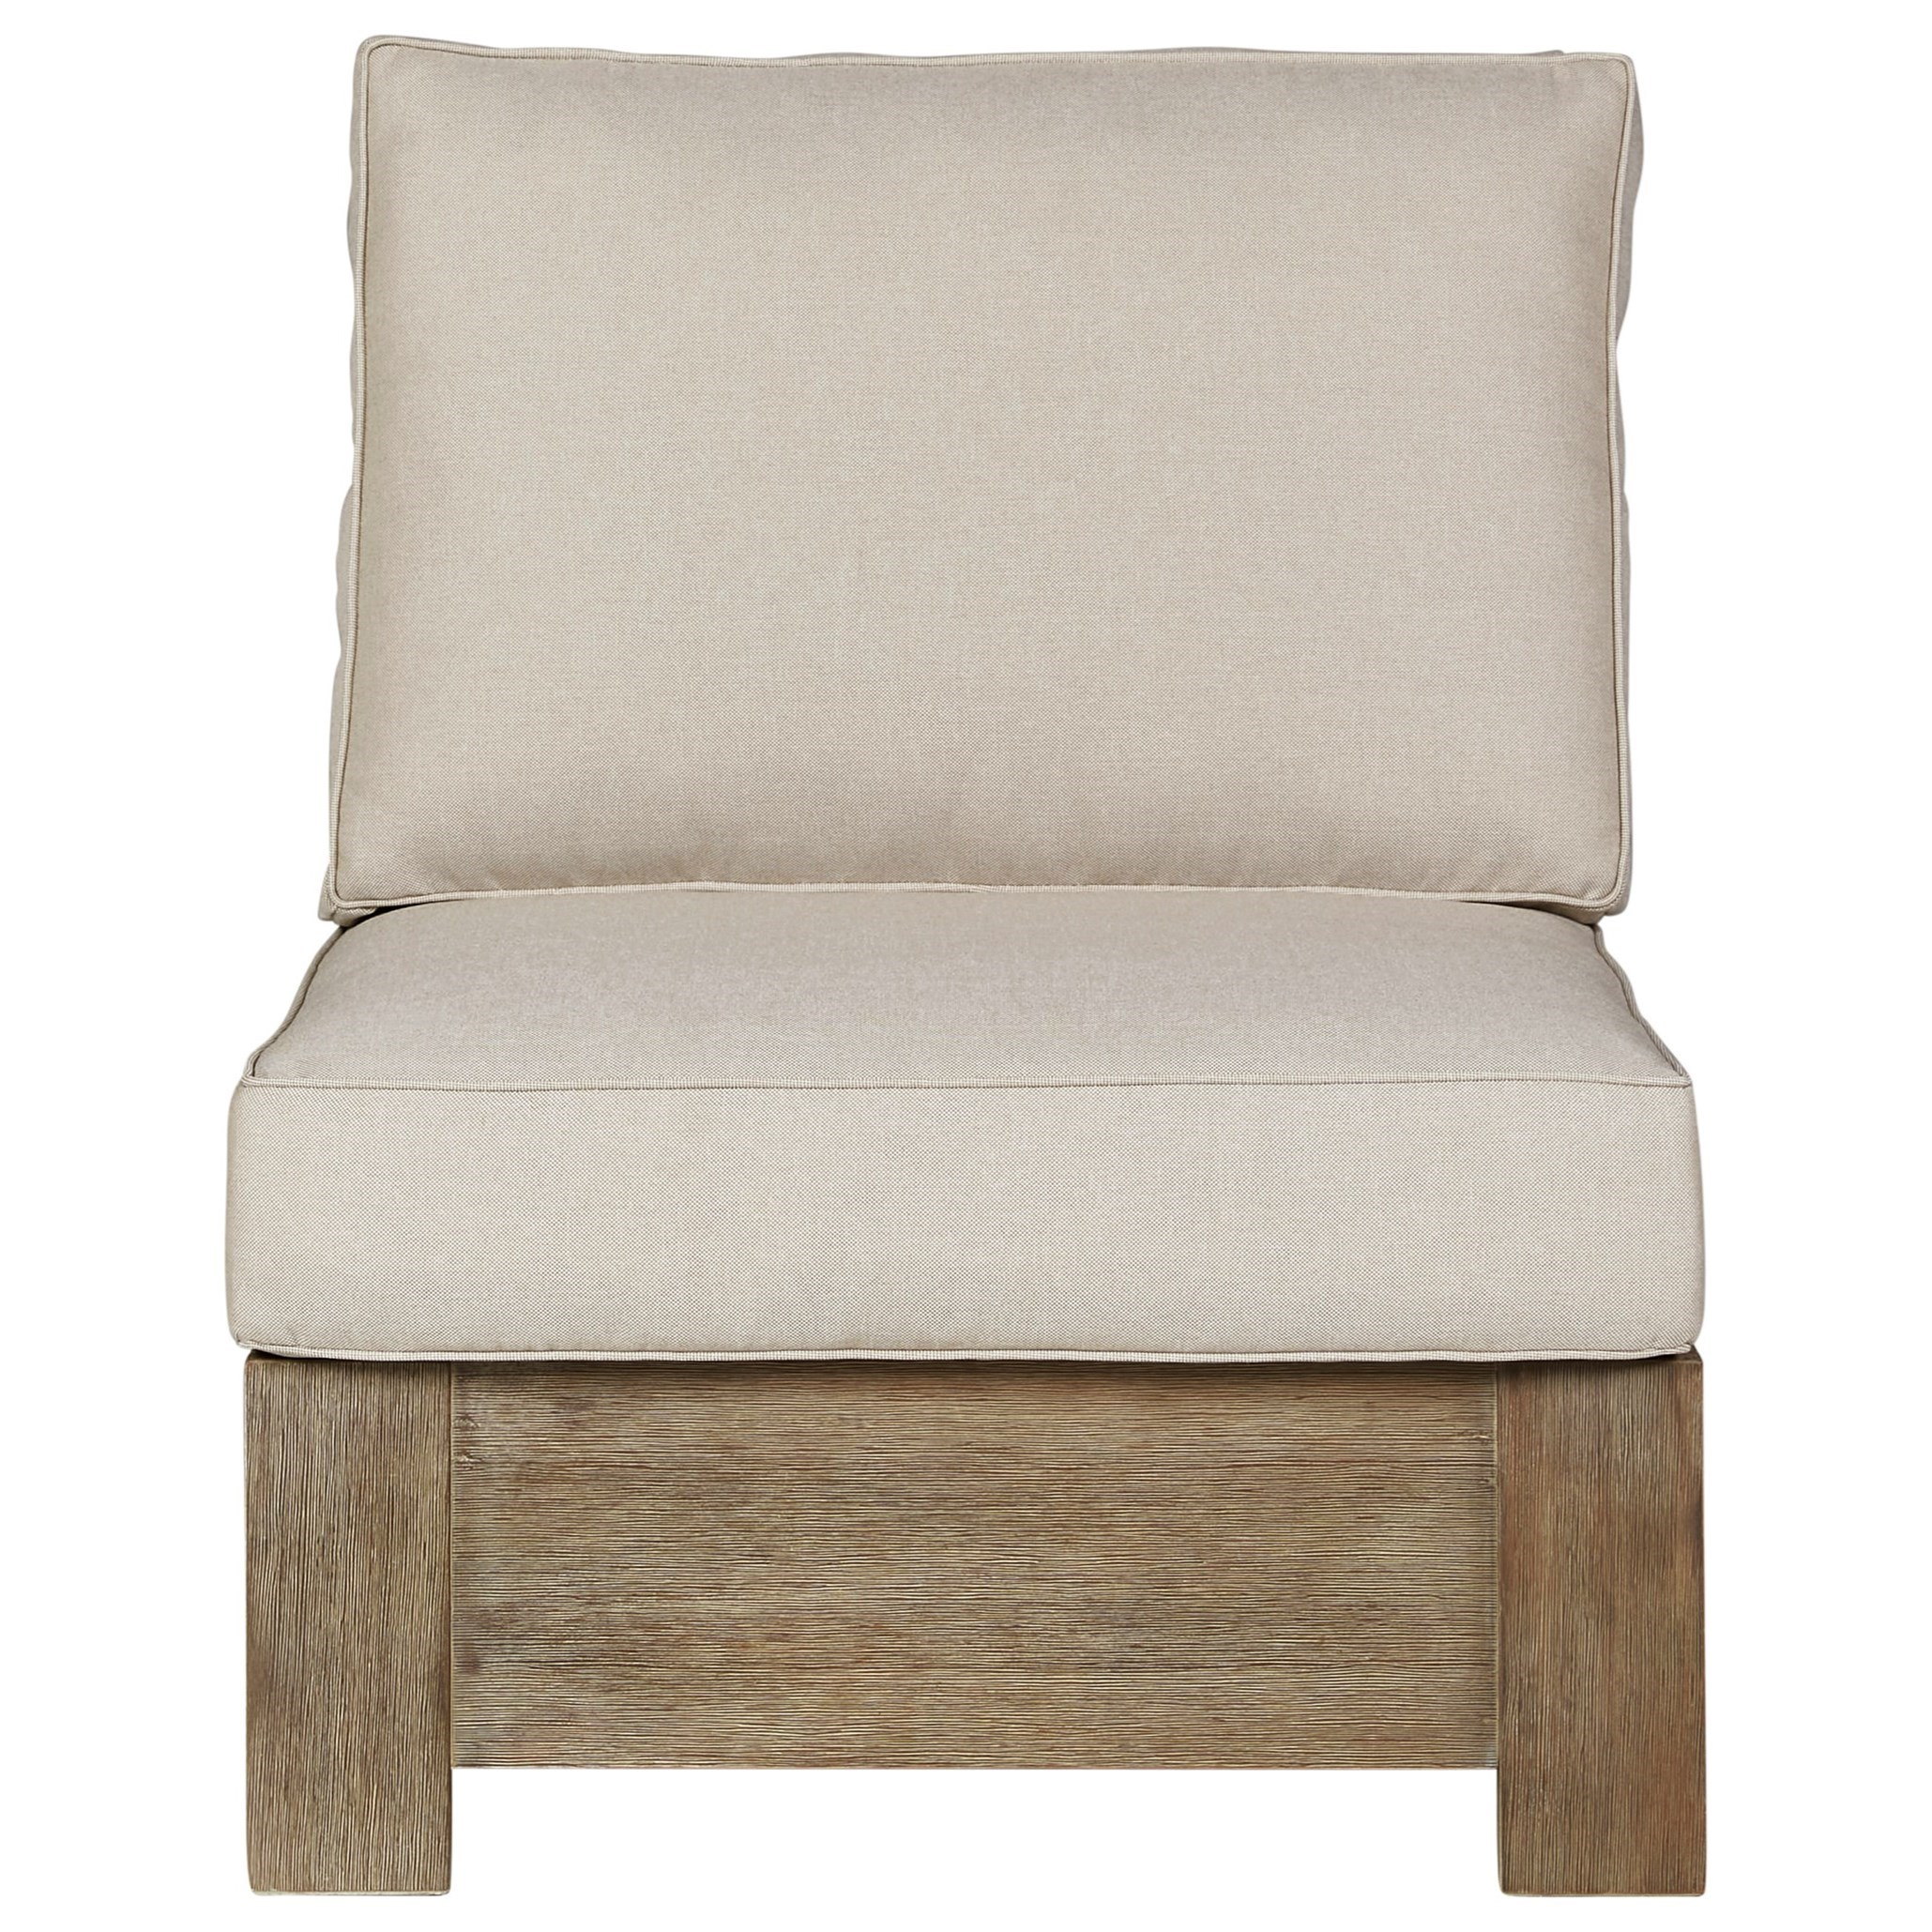 Silo Point Armless Chair w/ Cushion by Signature at Walker's Furniture